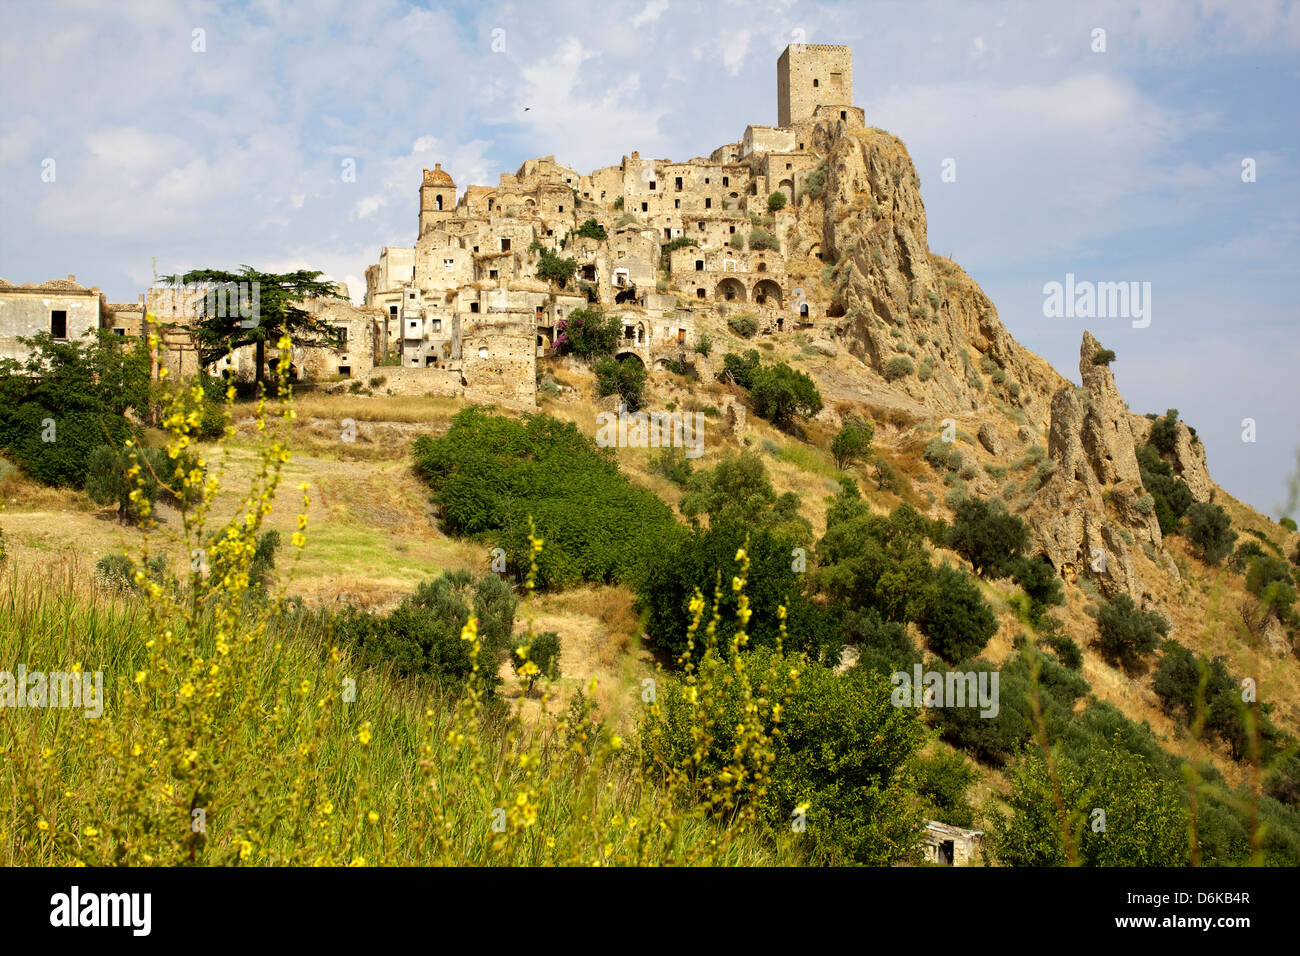 The Citadelle, deserted village of Craco in Basilicata, Italy, Europe Stock Photo